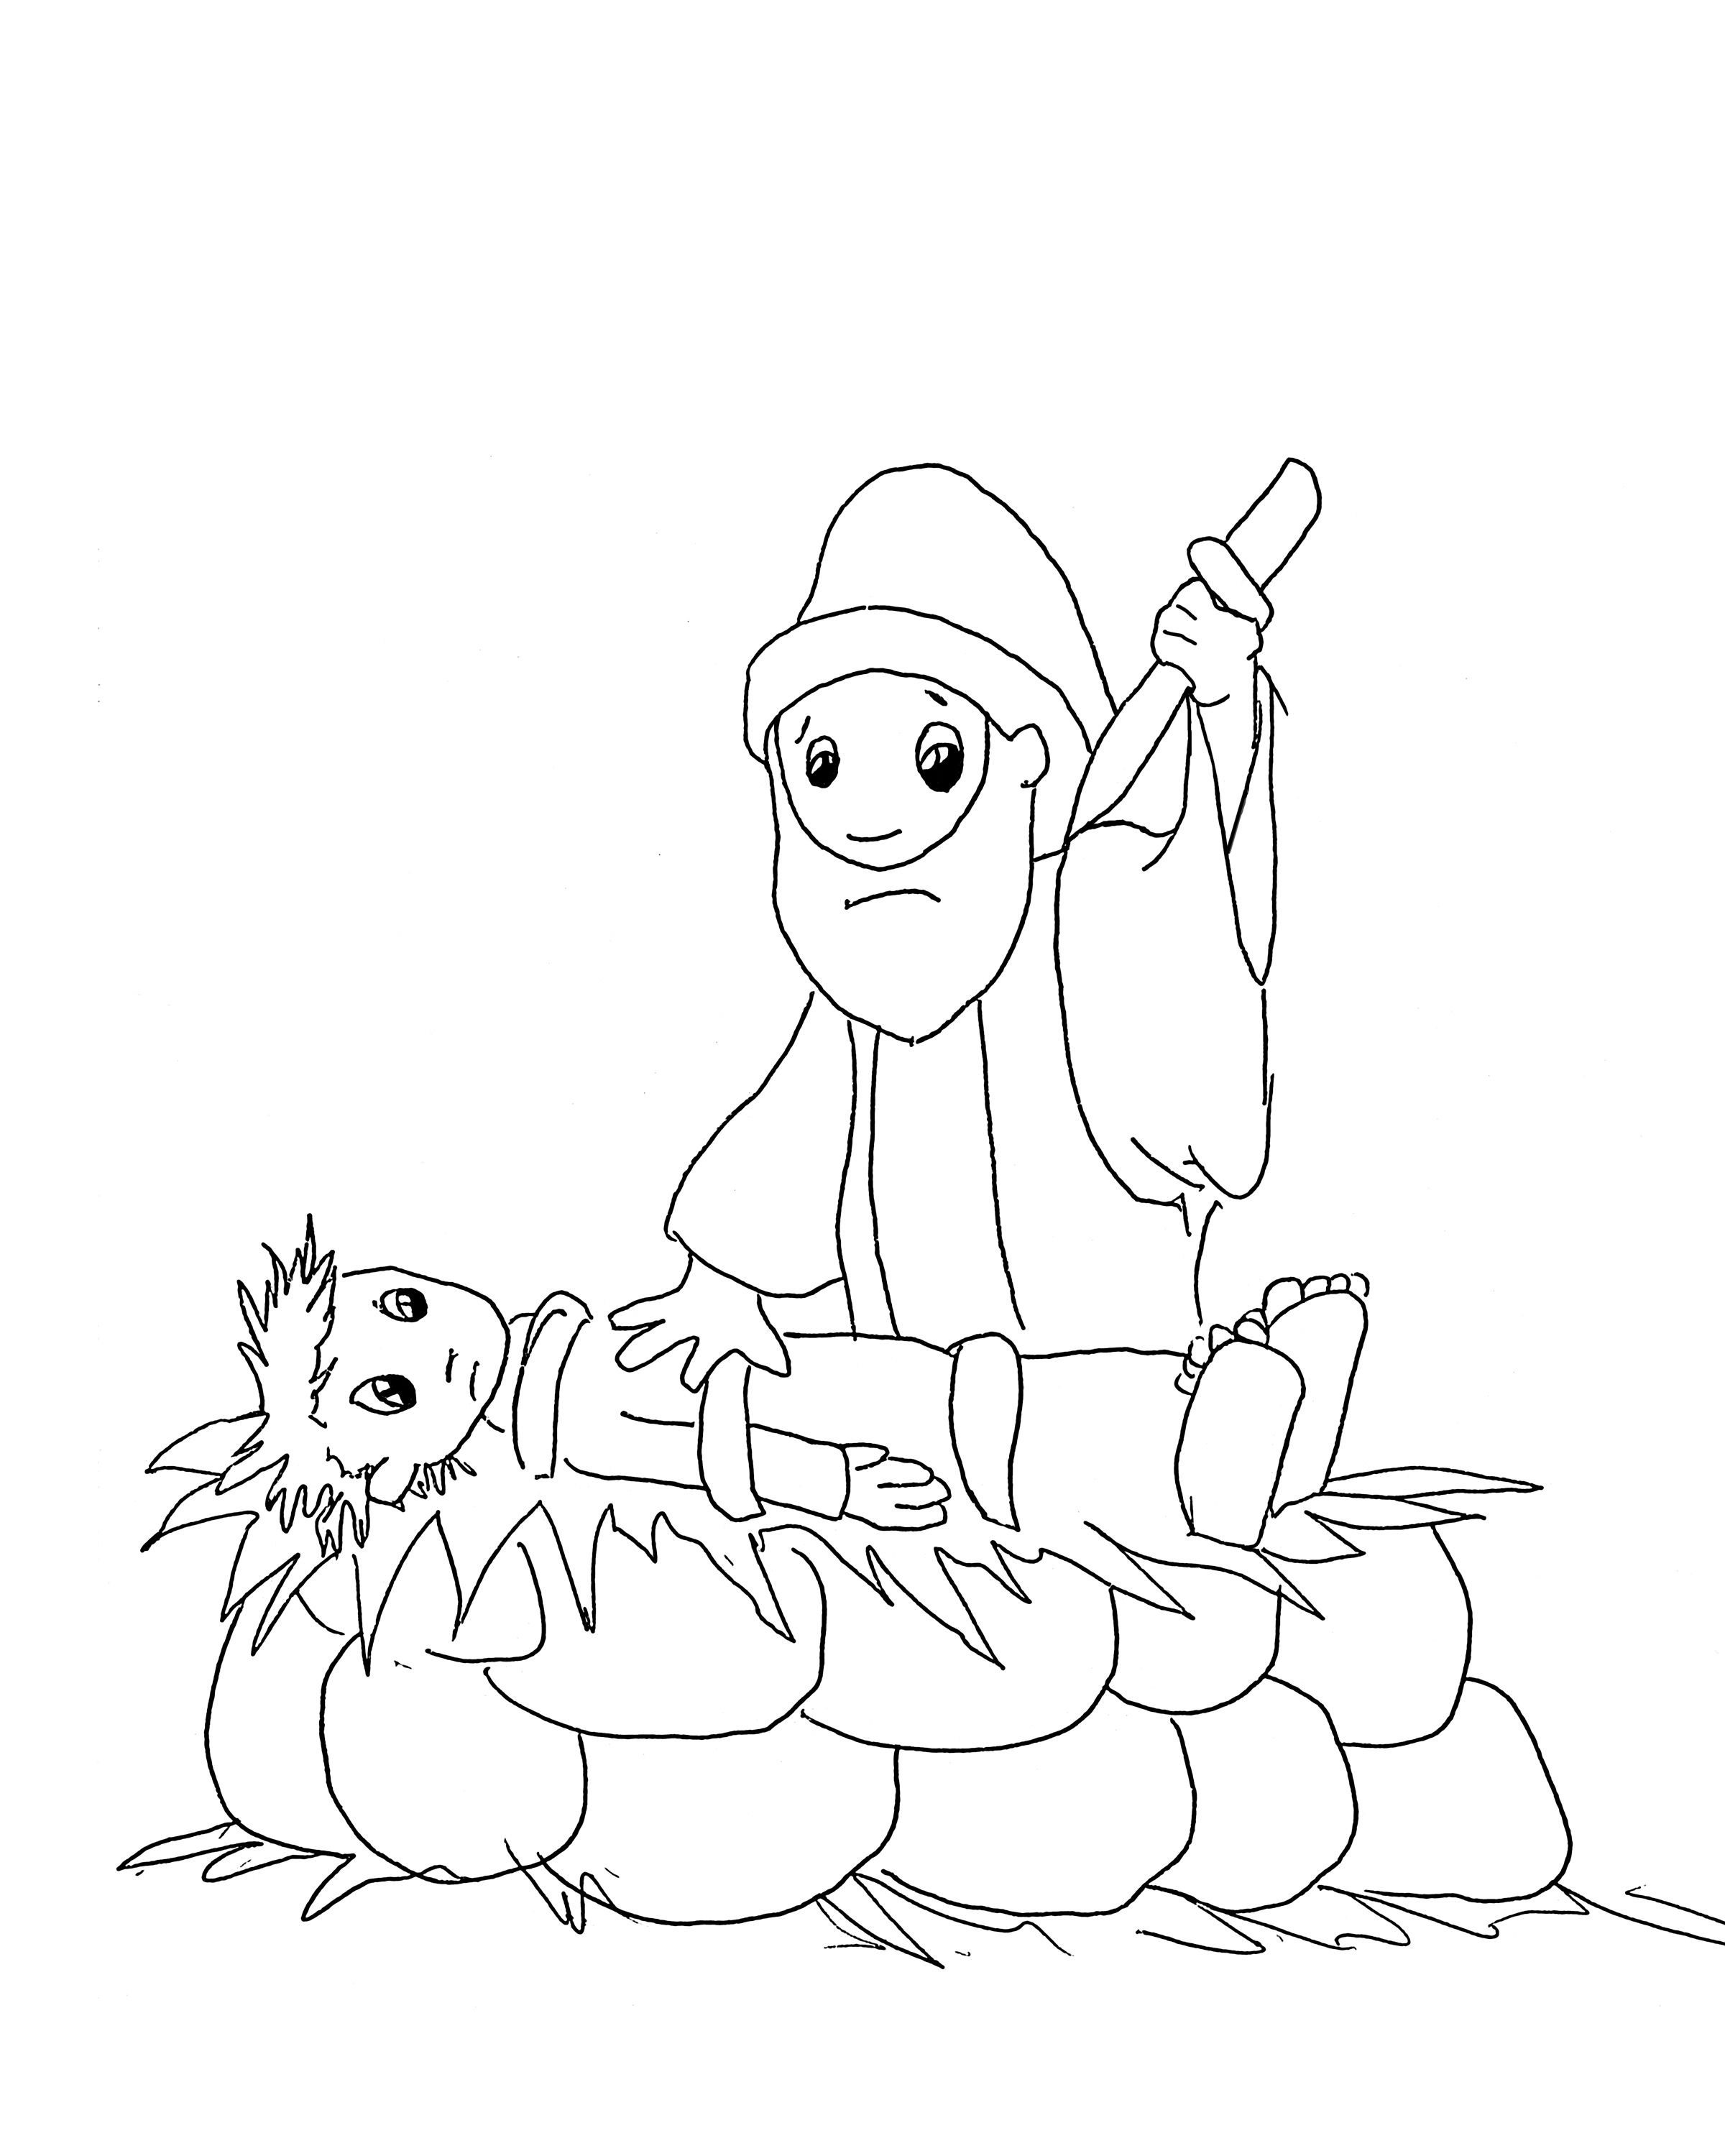 a picture from one of the coloring books faithful abraham ready